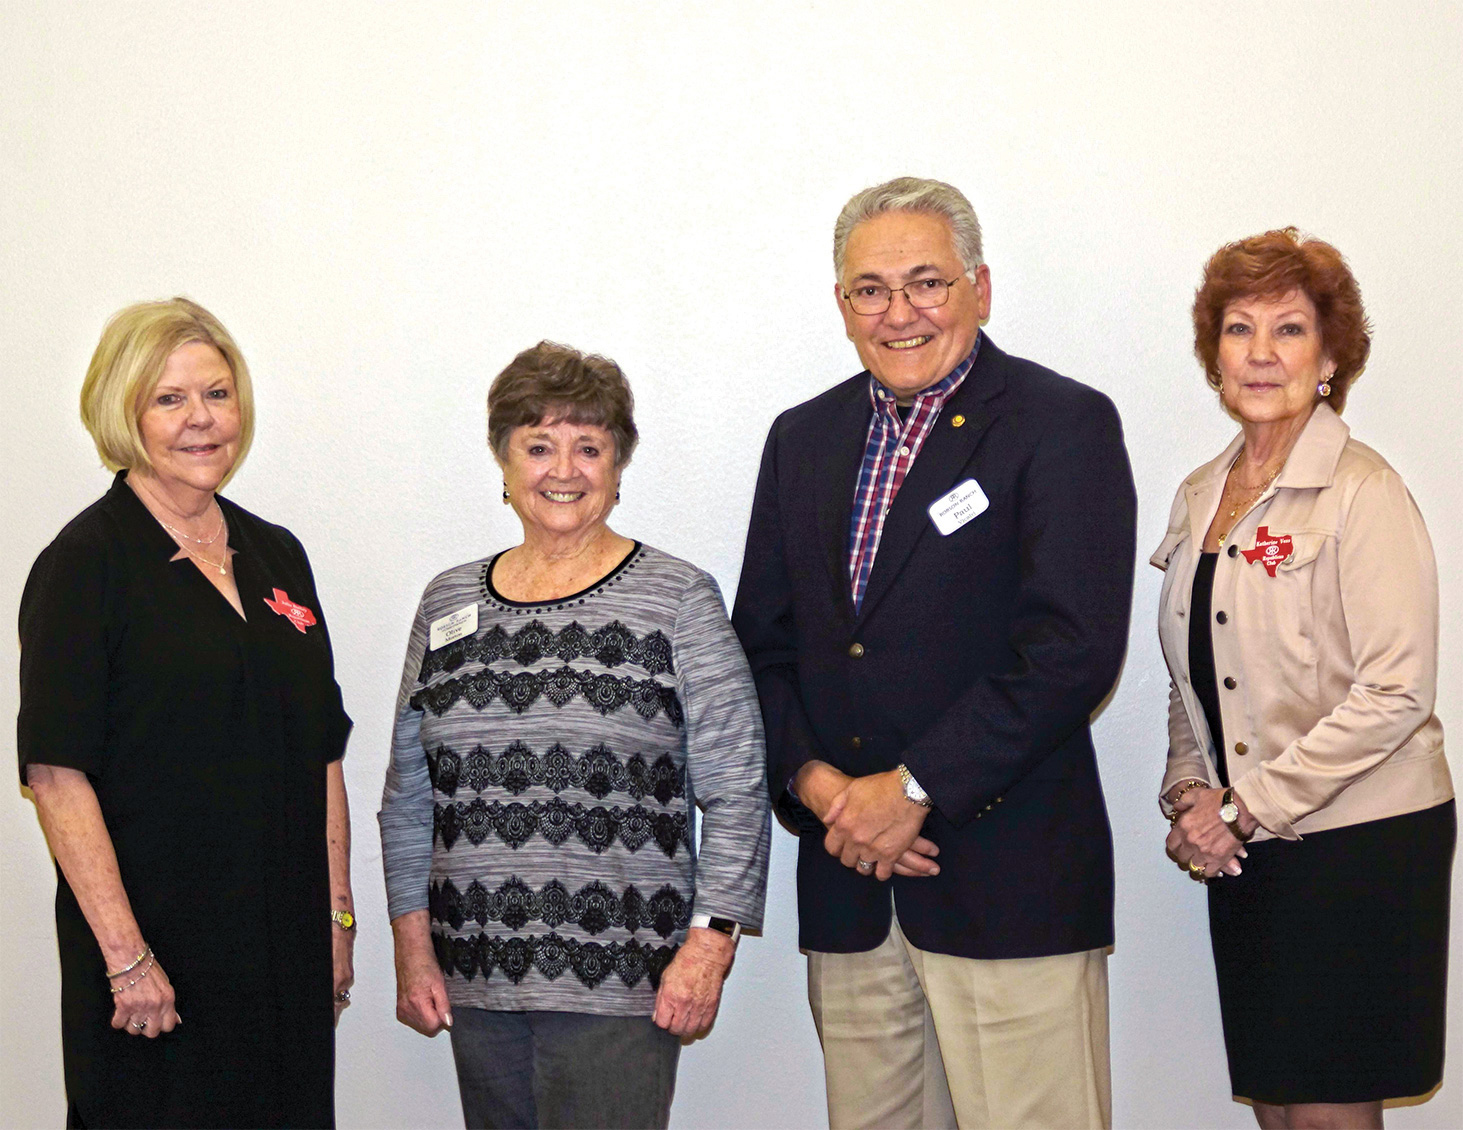 From left to right: Julie Bailey, Olive Morton, Paul Vicalvi, and Katherine Vess